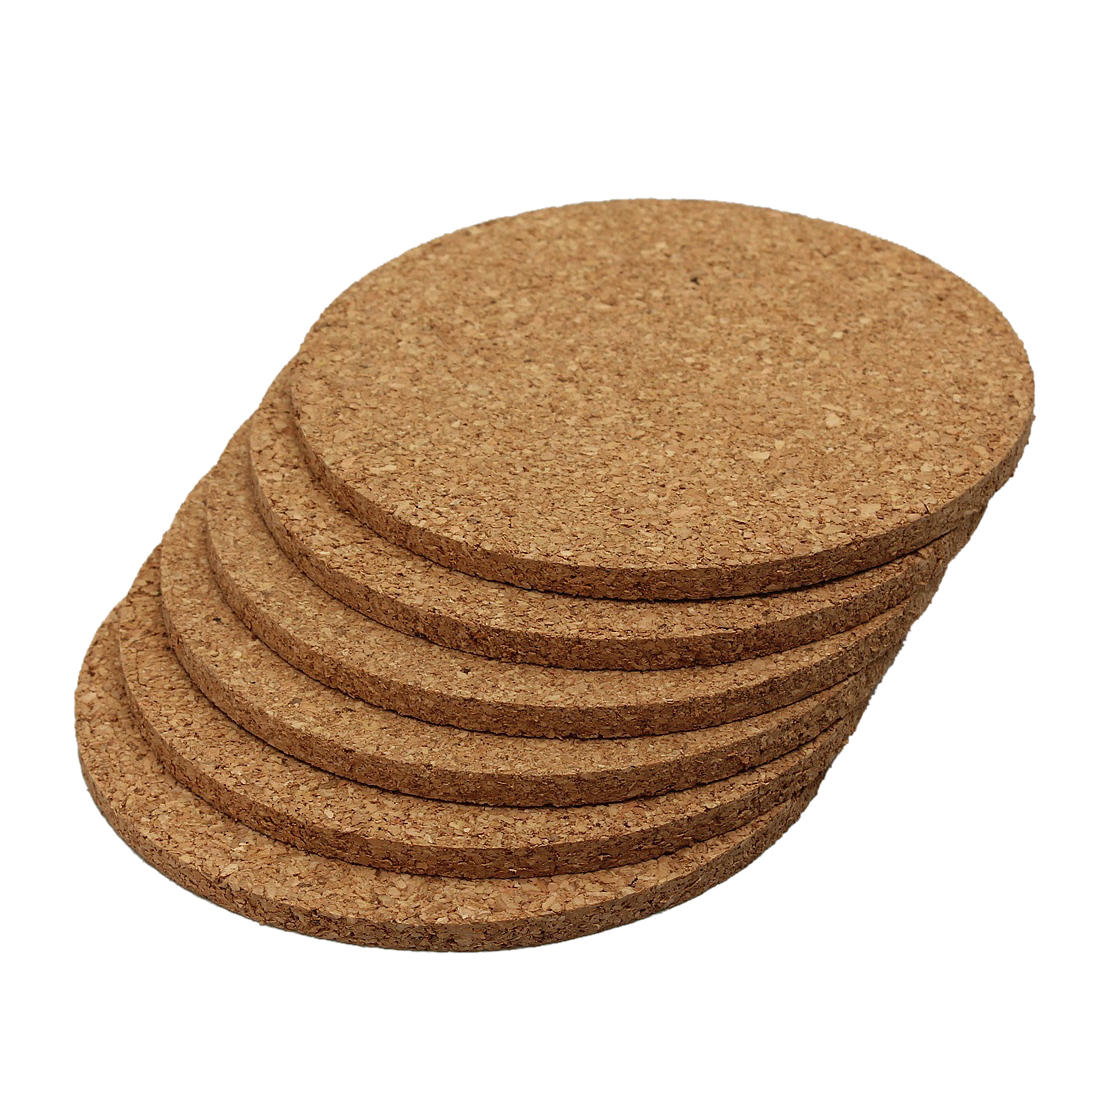 Cup Mat 6pcs Plain Round Cork Coasters Coffee Drink Tea Cup Mat